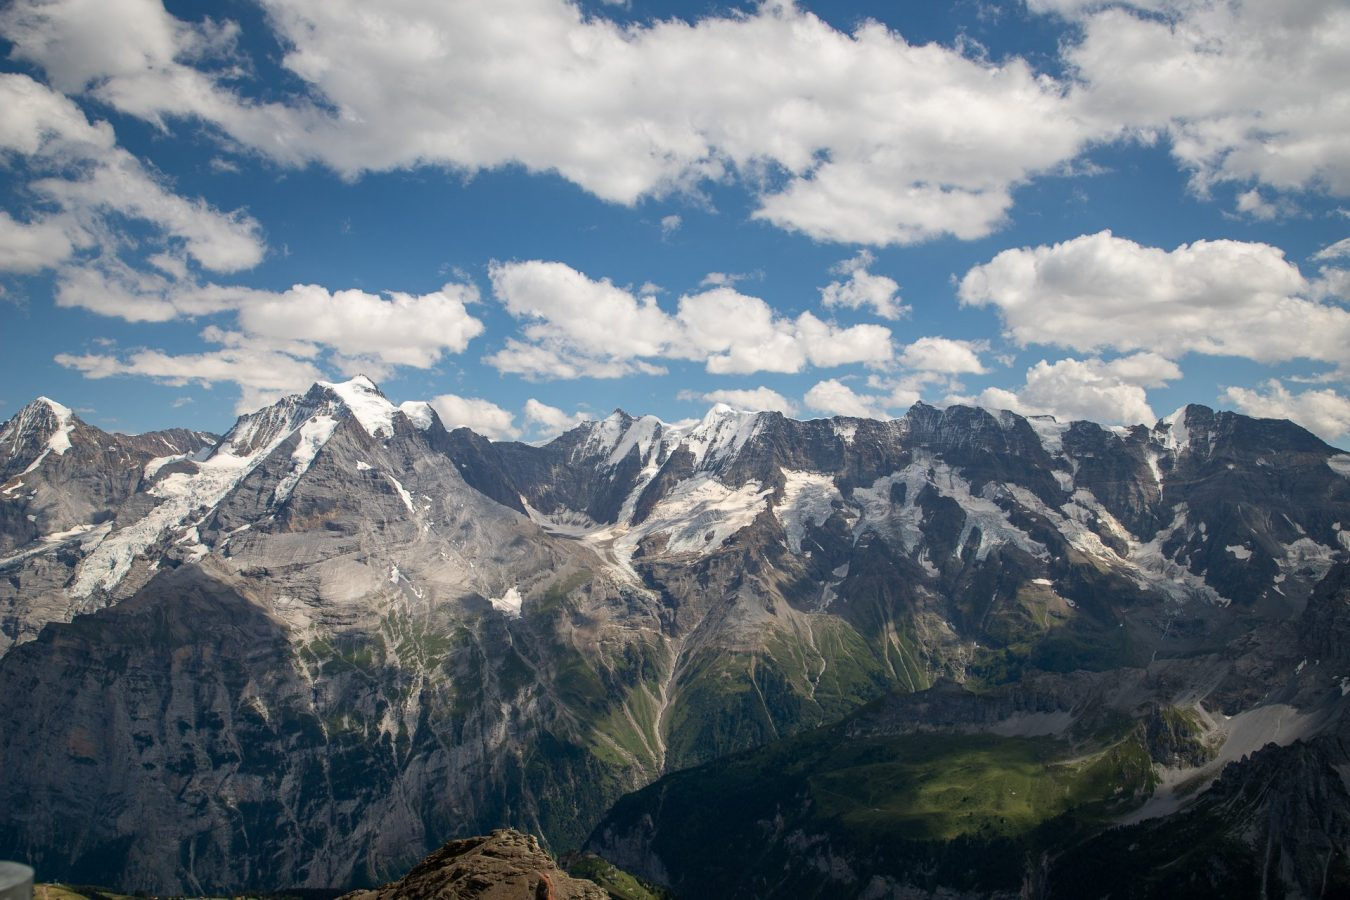 Views from the top of the Schilthorn